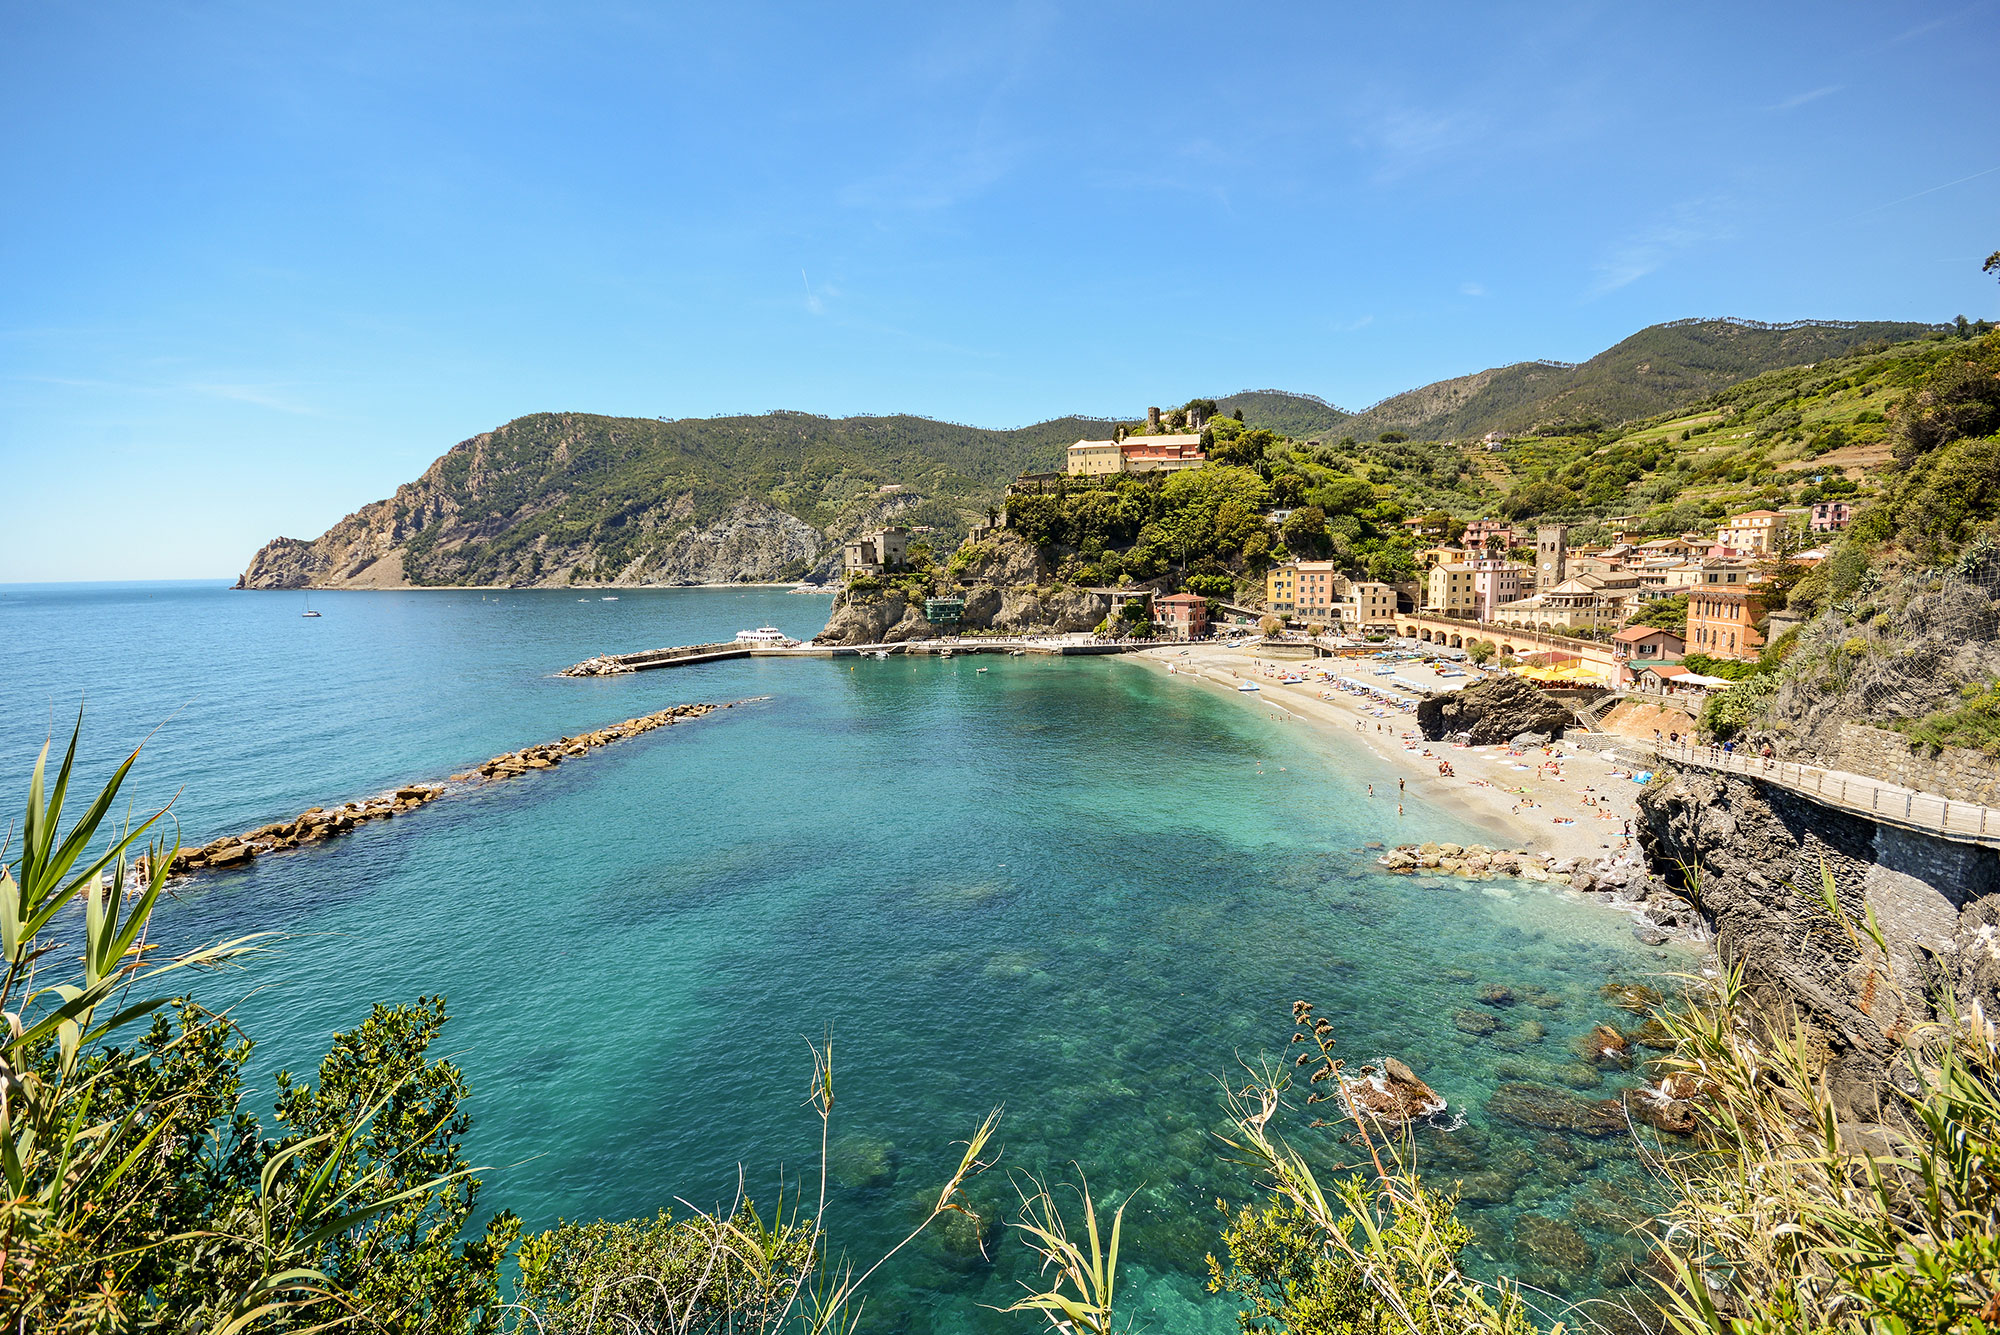 Beaches of Monterosso al Mare